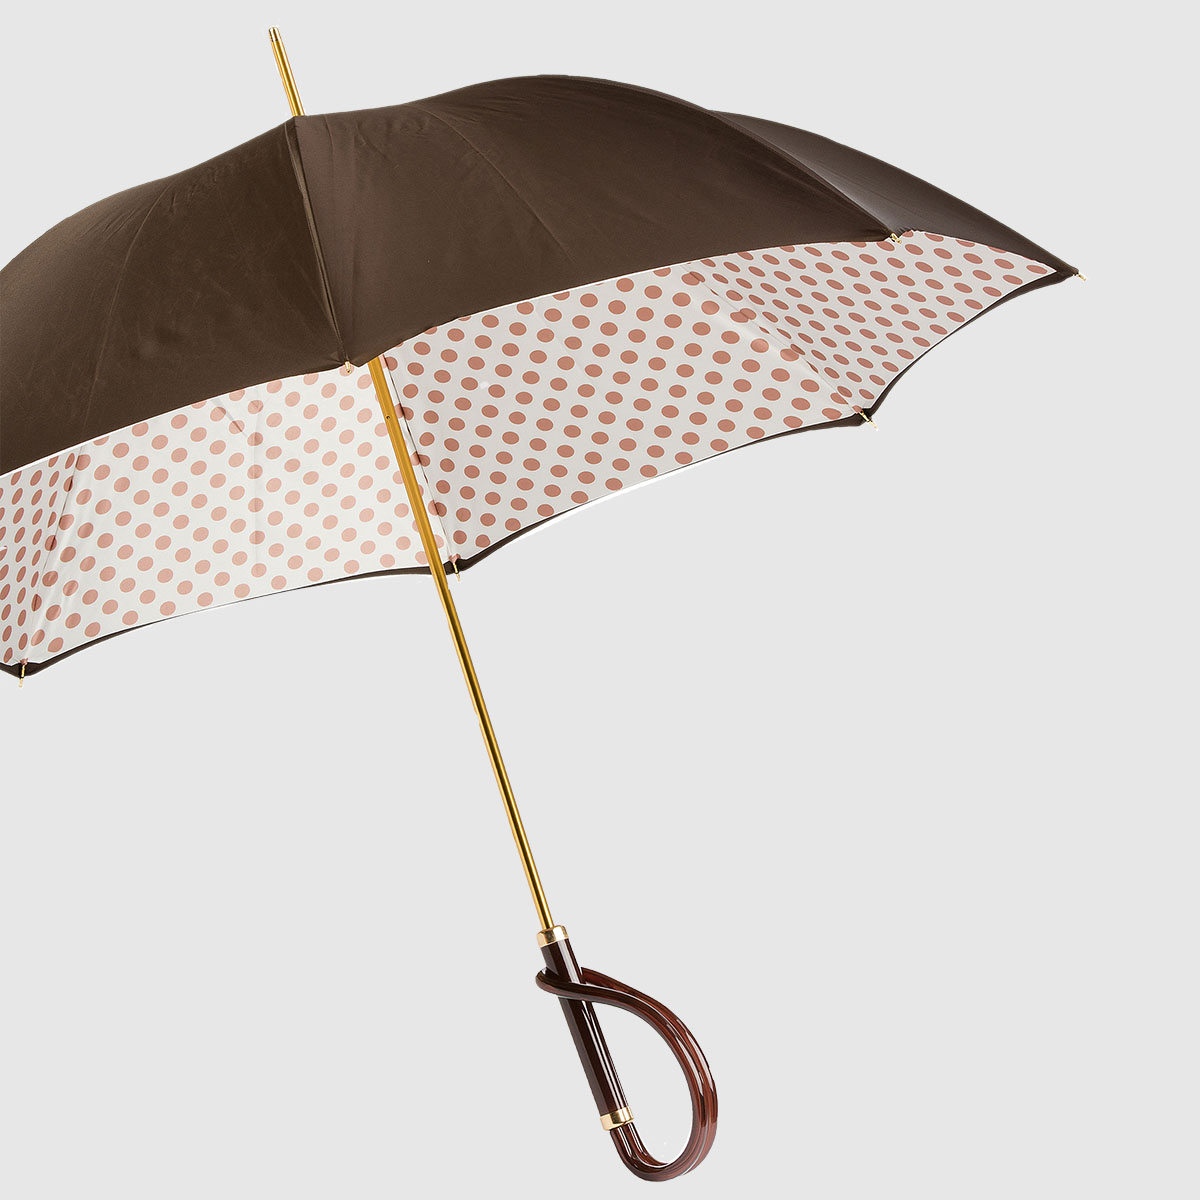 Women's Umbrella with polka dot lining